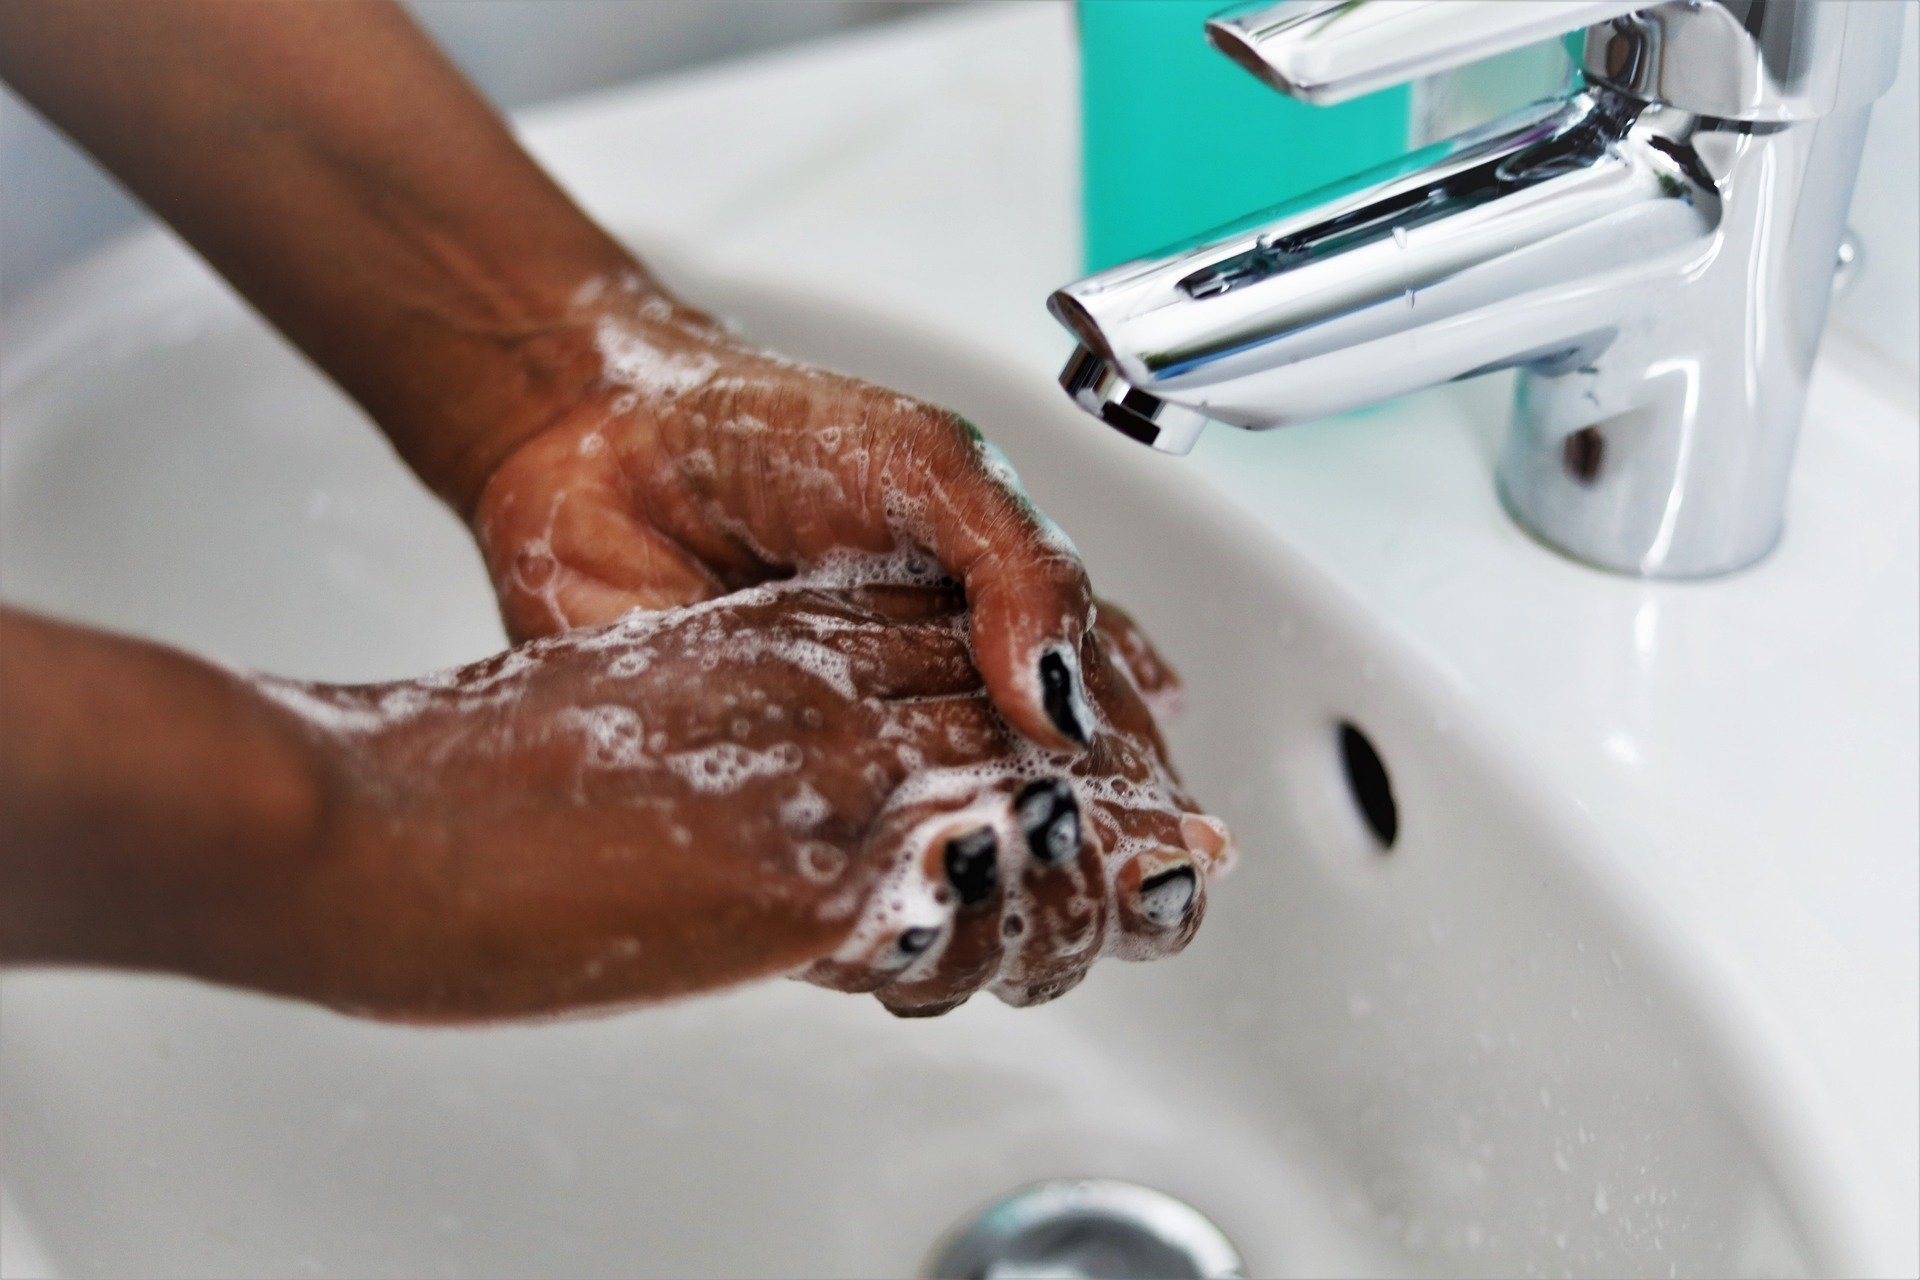 The gains made in improved water and sanitation during this pandemic must persist if we are to prevent another